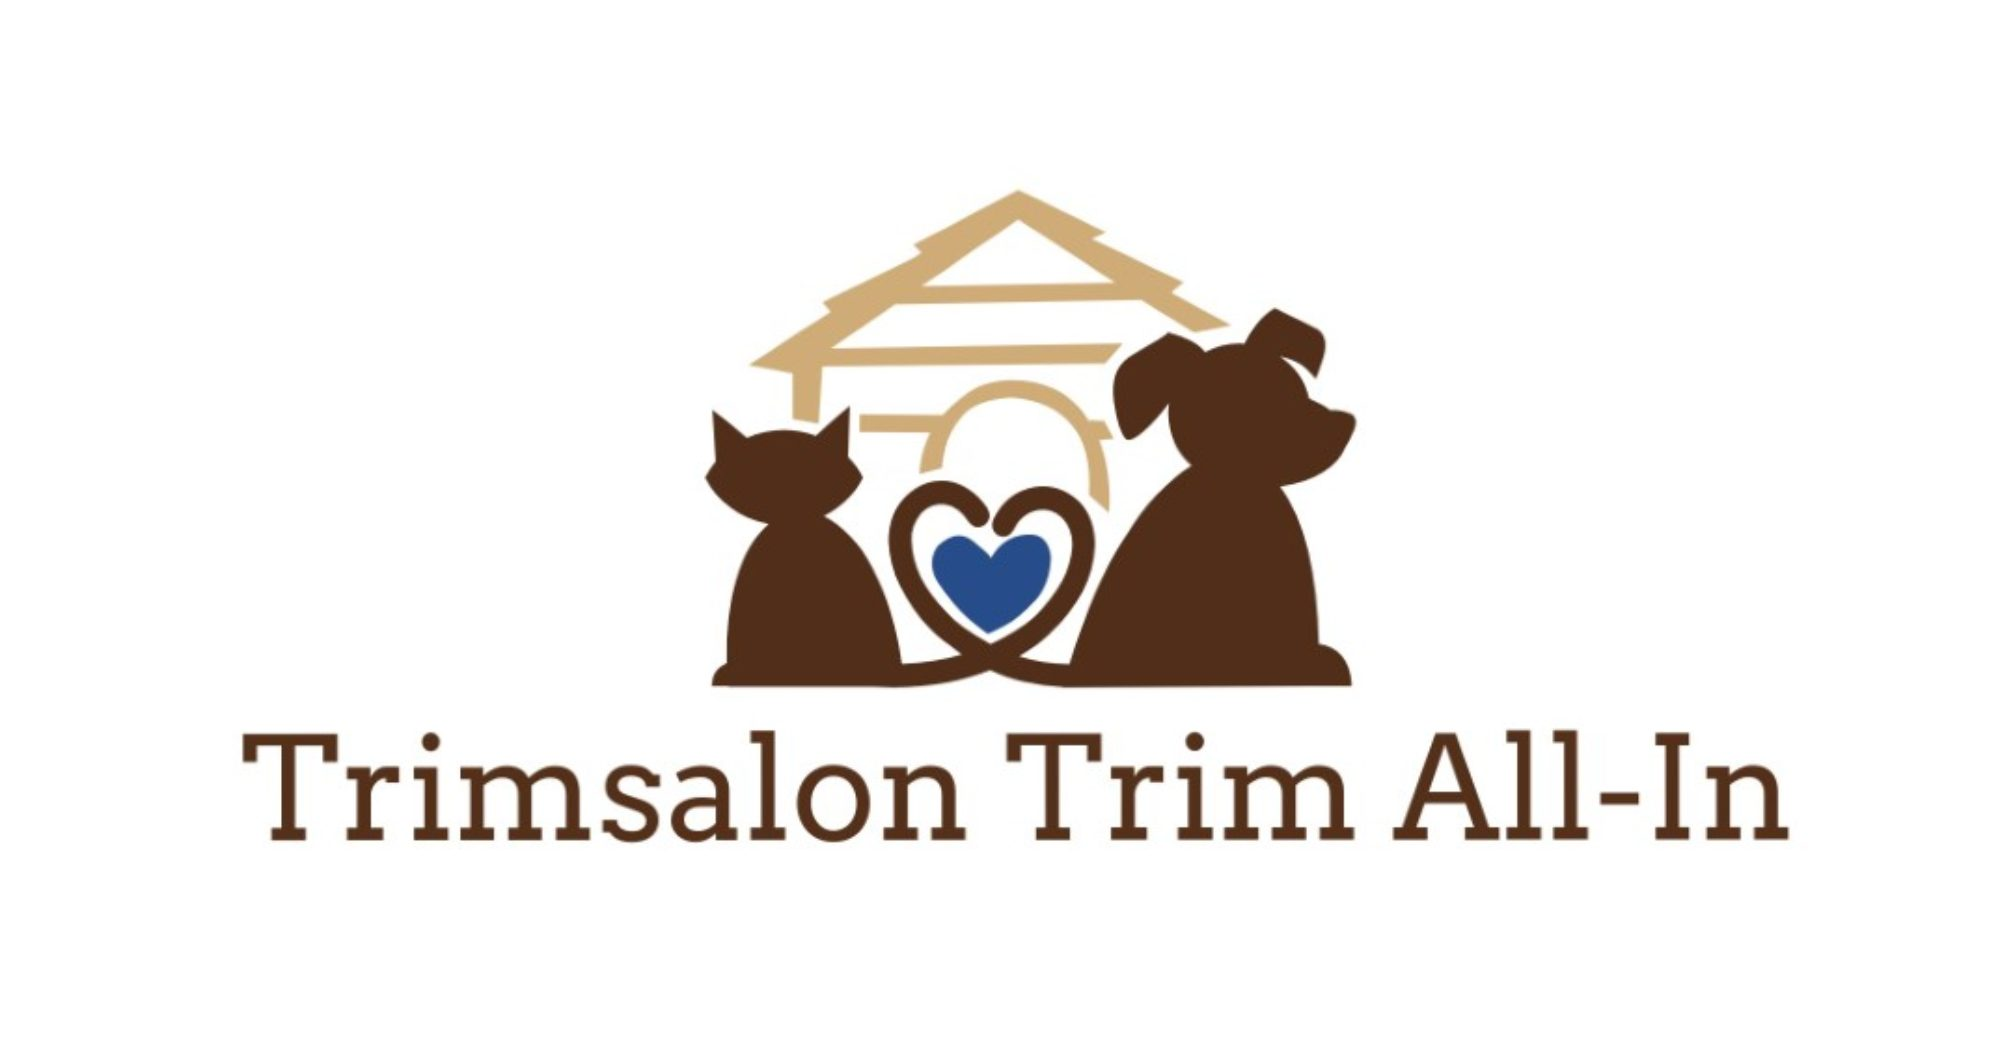 Trimsalon Trim All-In